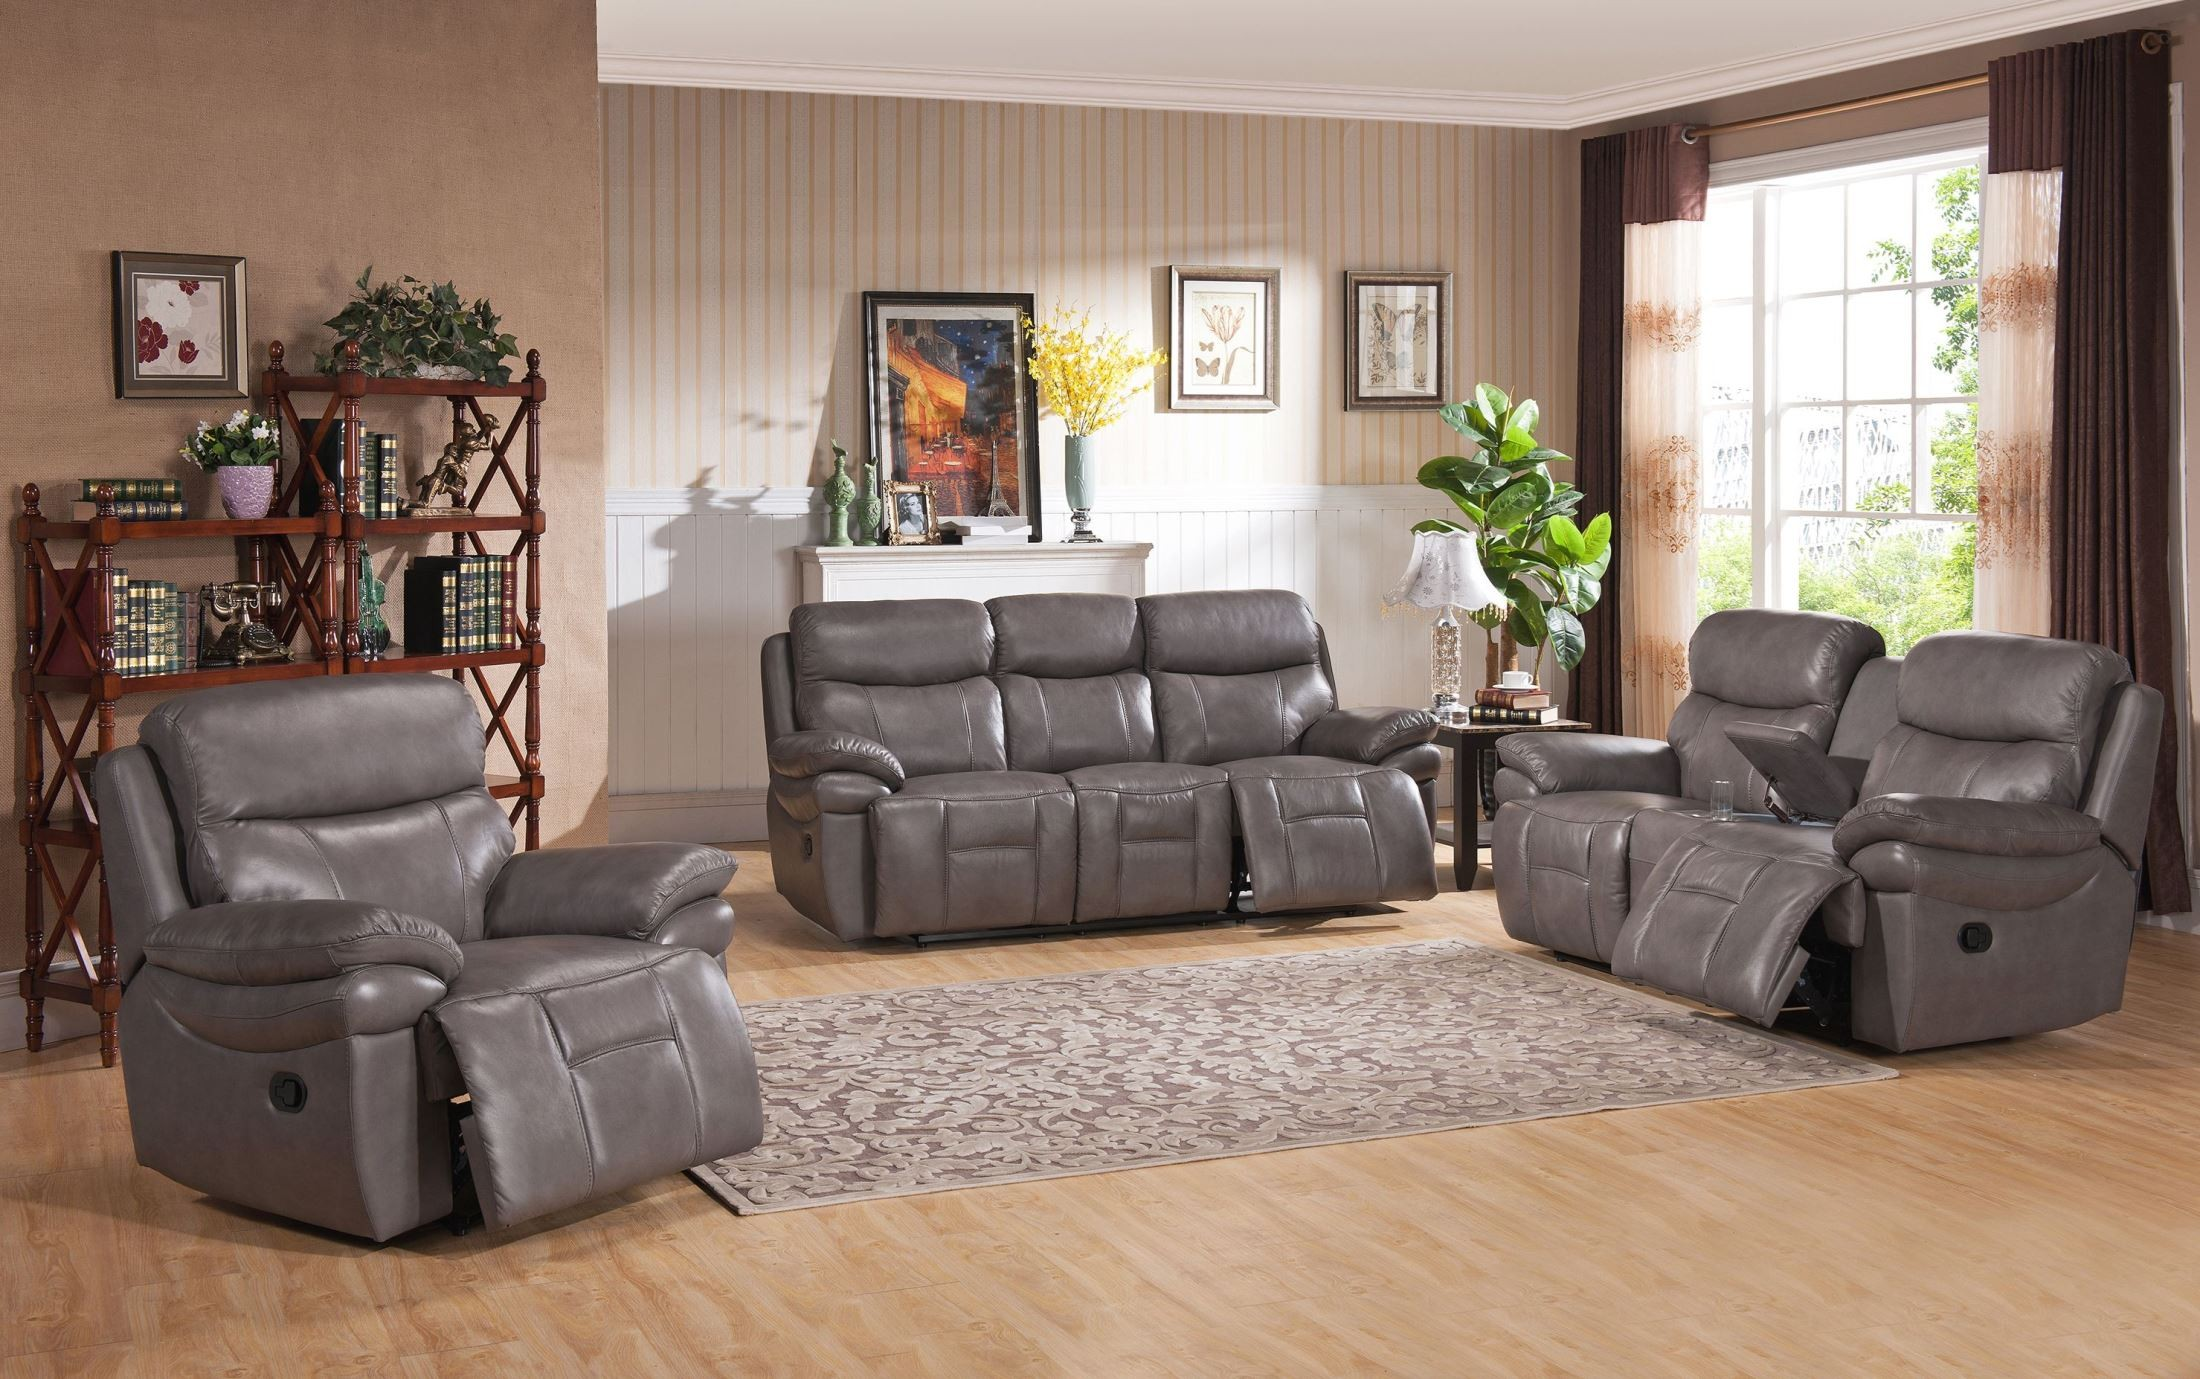 Summerlands smoke grey leather reclining living room set for Cheap reclining living room sets